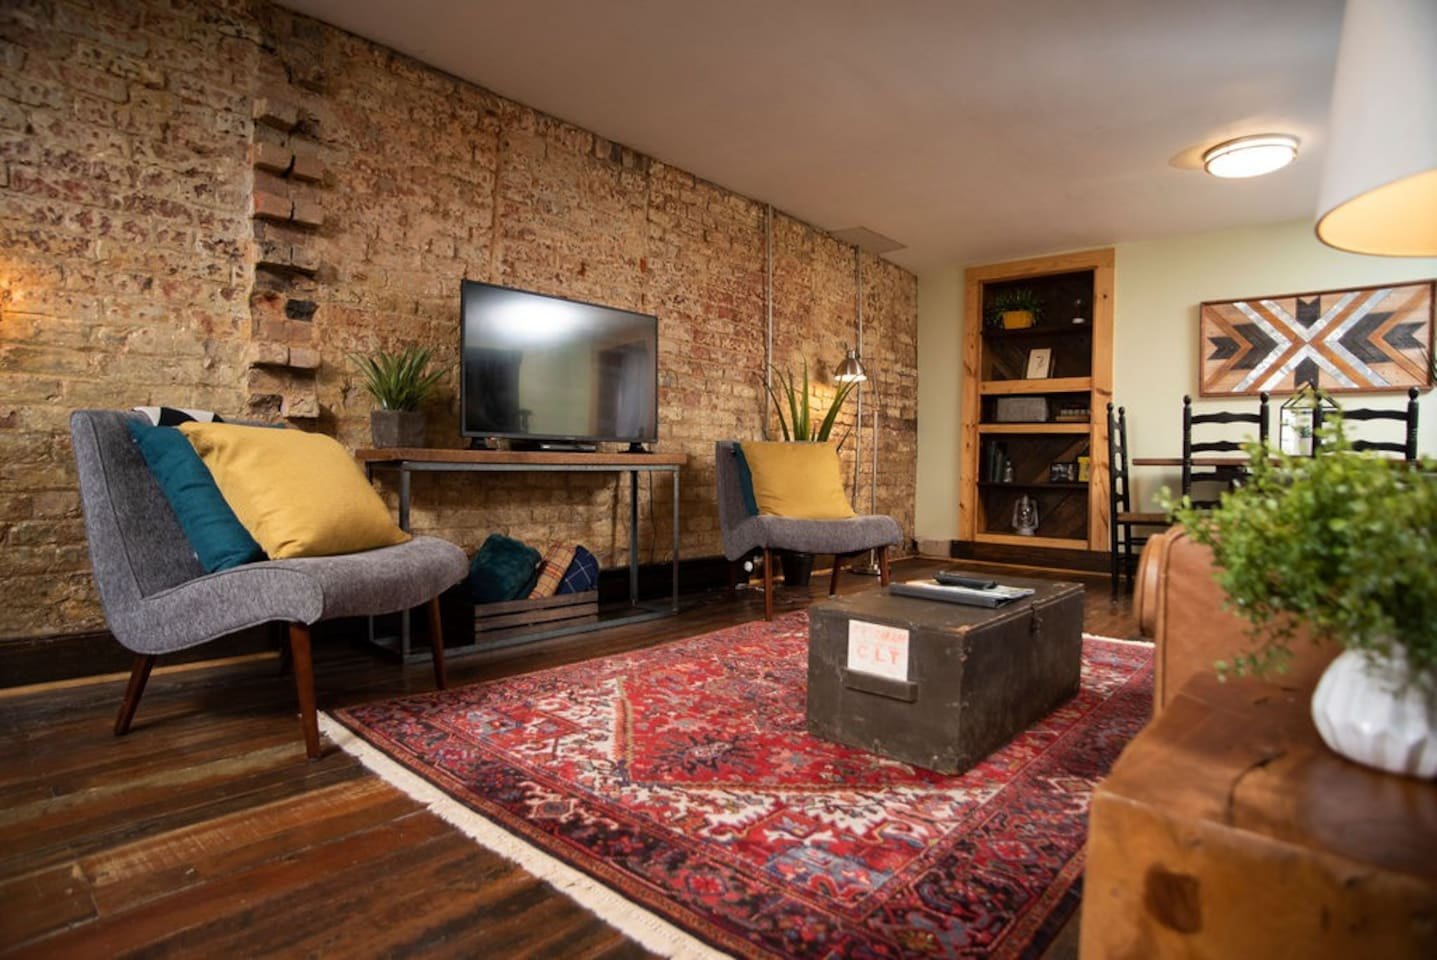 200 year old exposed brick wall in this apt full of historic rustic character